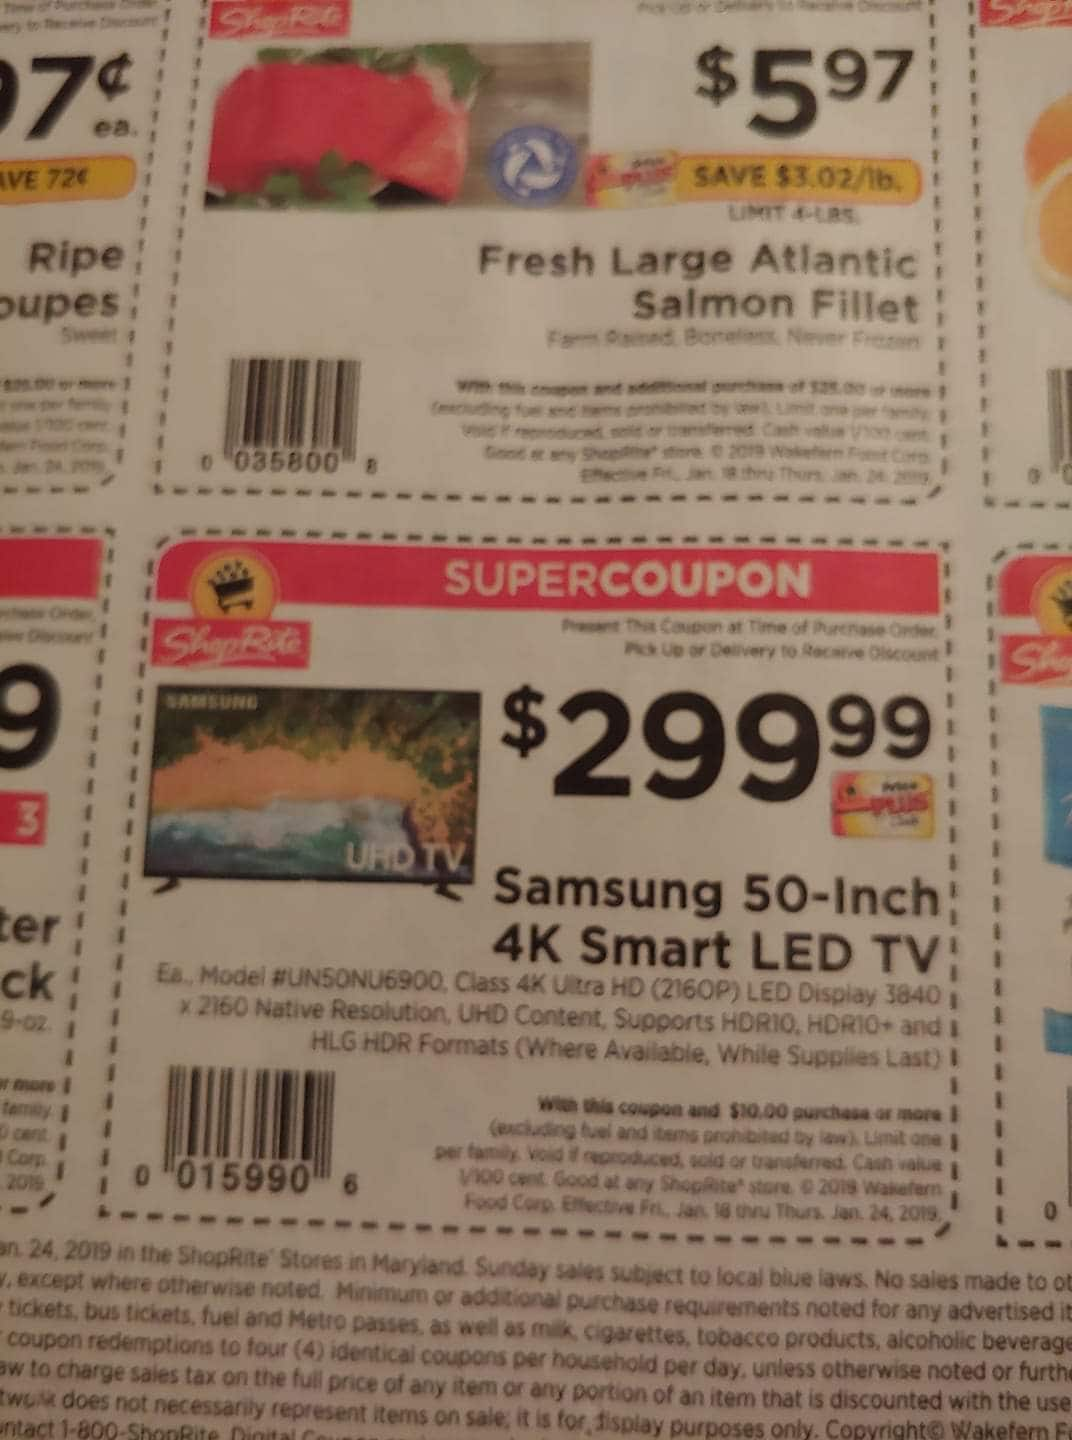 50-inch class Samsung 4k Smart LED TV - $299 at ShopRite B&M with in-circular coupon and PPC card starting 1/20 - 1/26